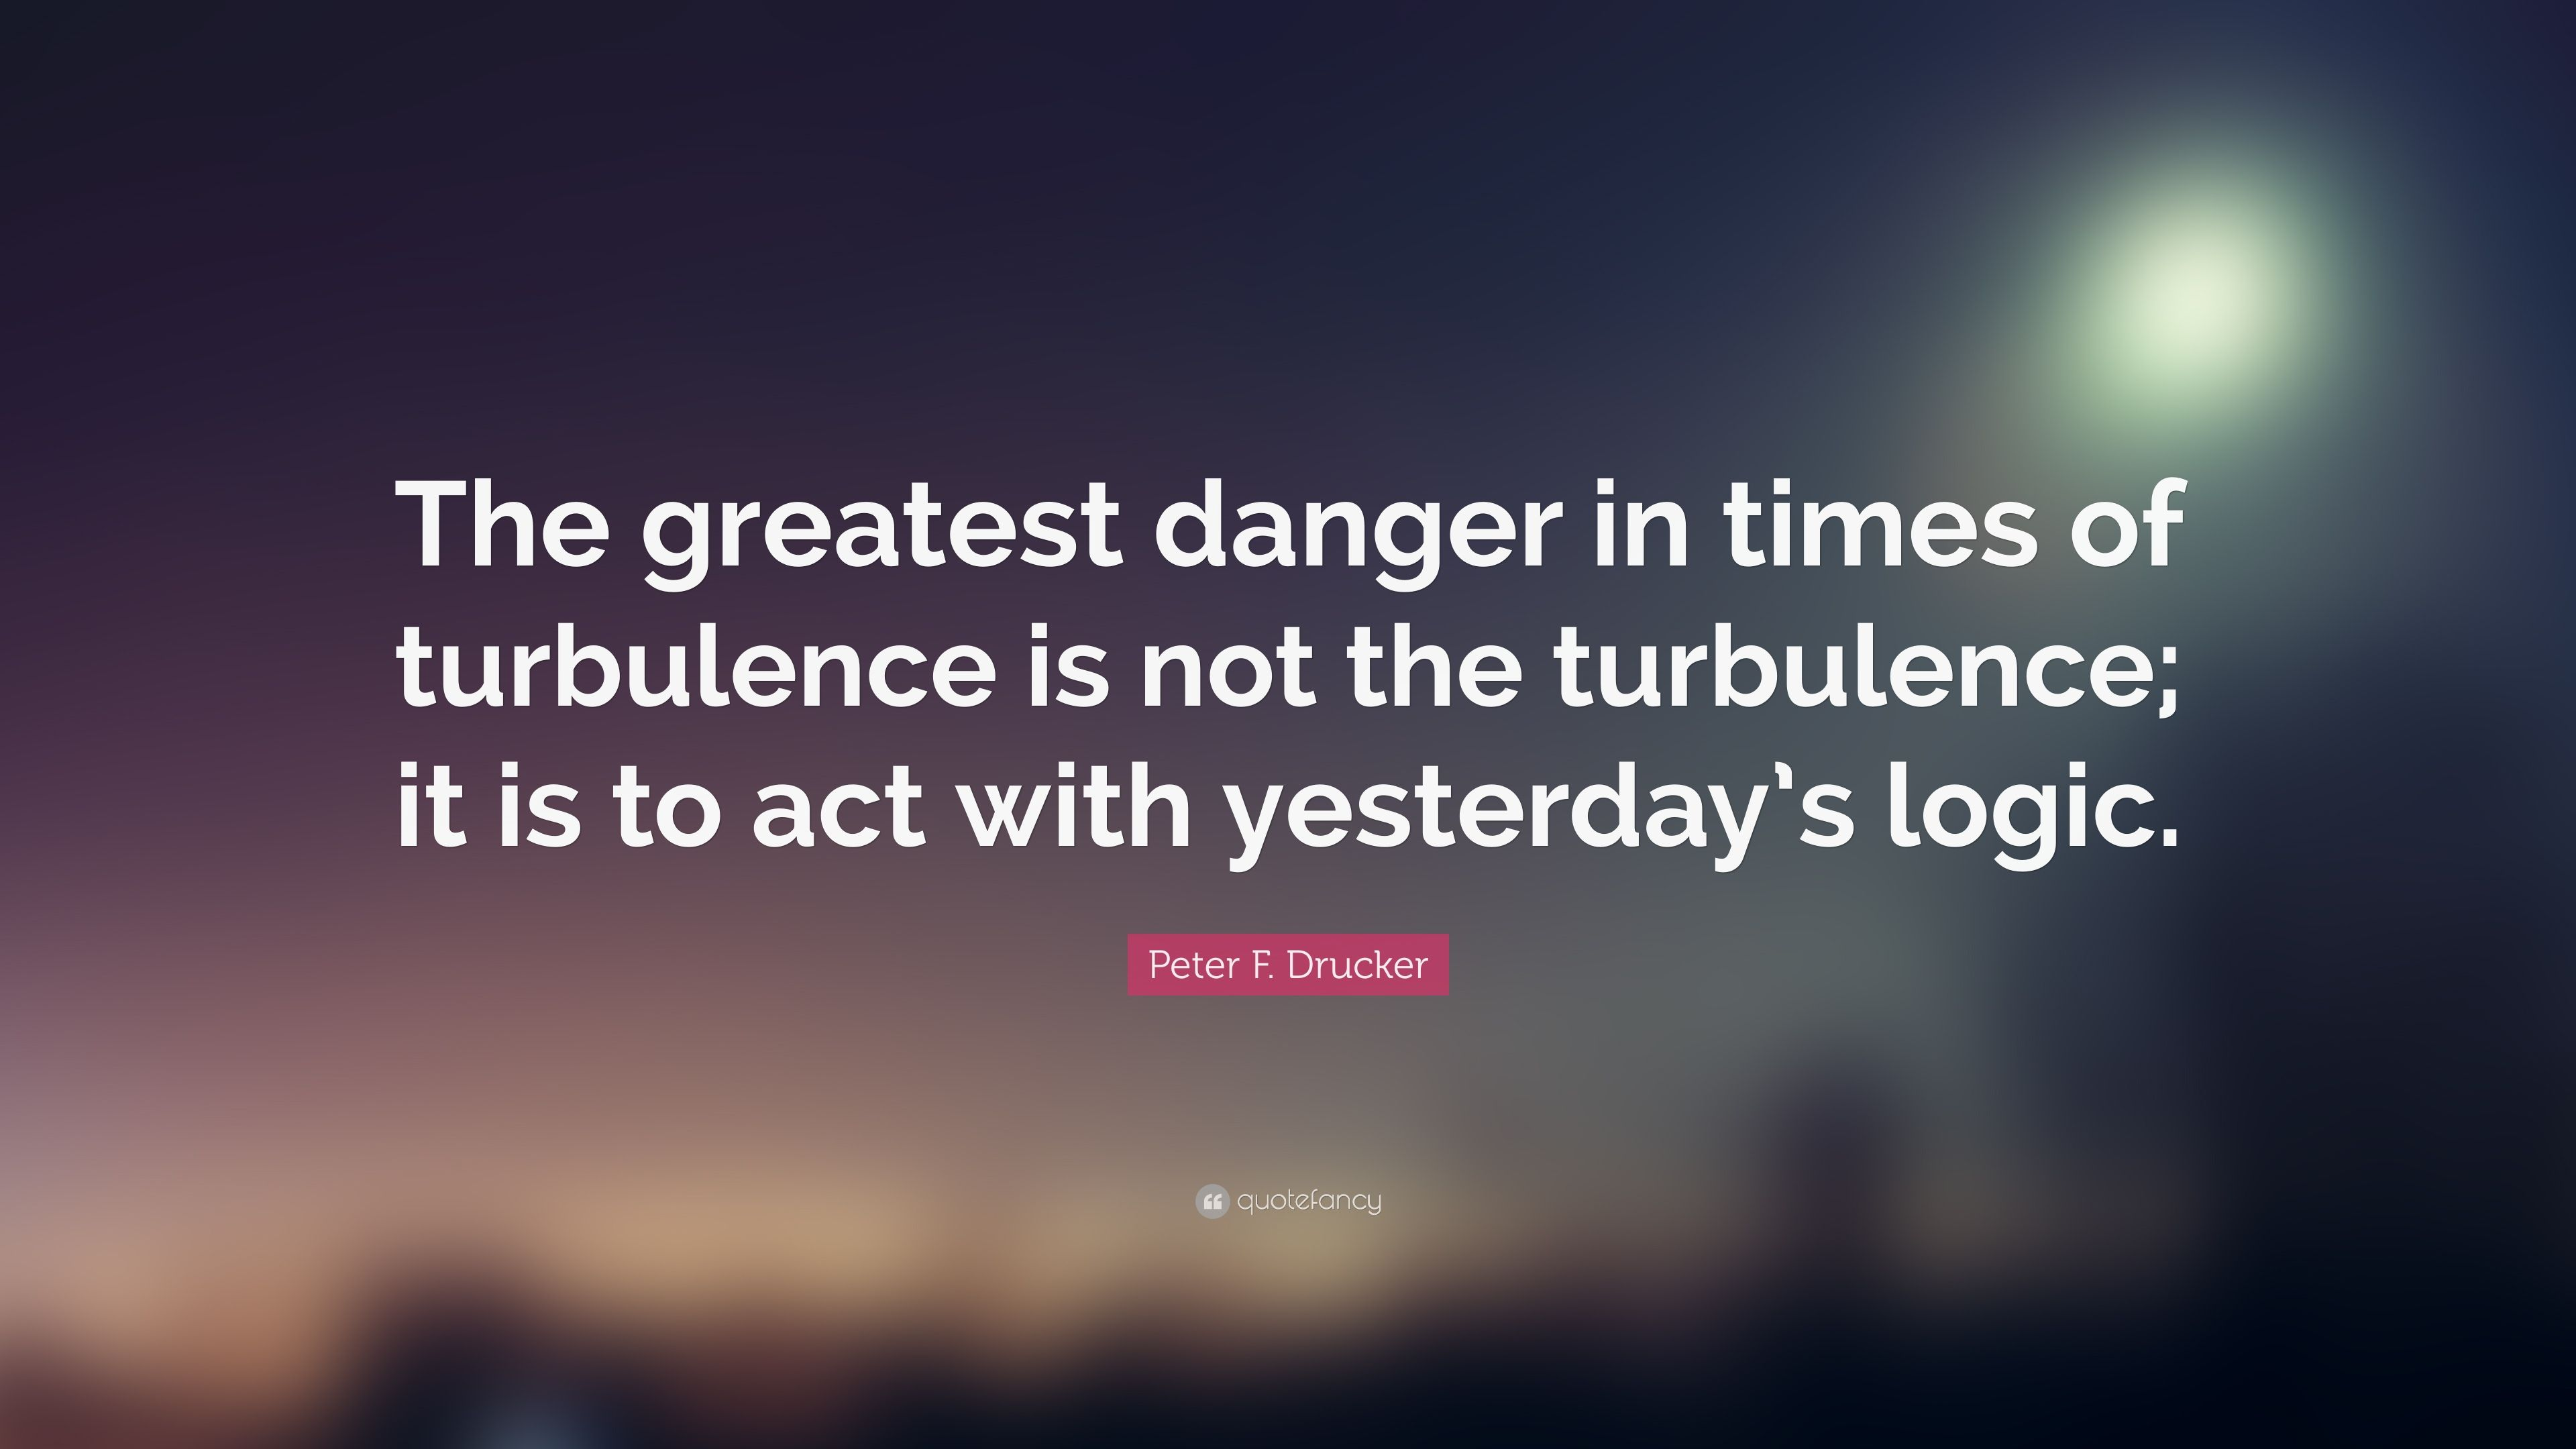 Peter F Drucker Times Of Turbulence Quote Time Quotes Quotes Greatful